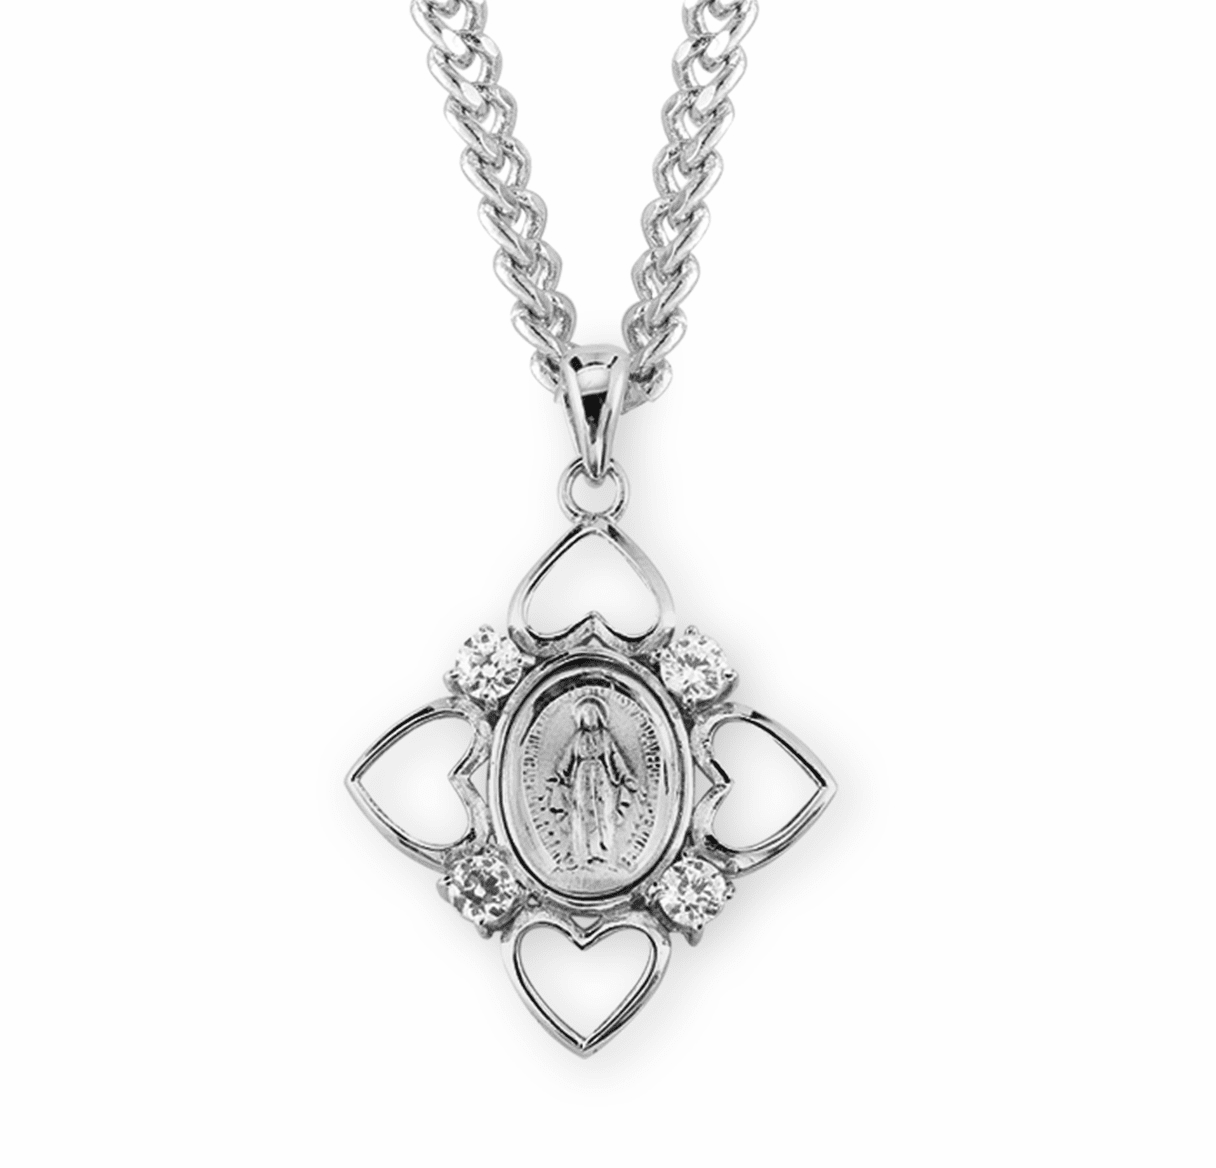 HMH Religious Crystal Sterling Silver Miraculous Medal Necklace